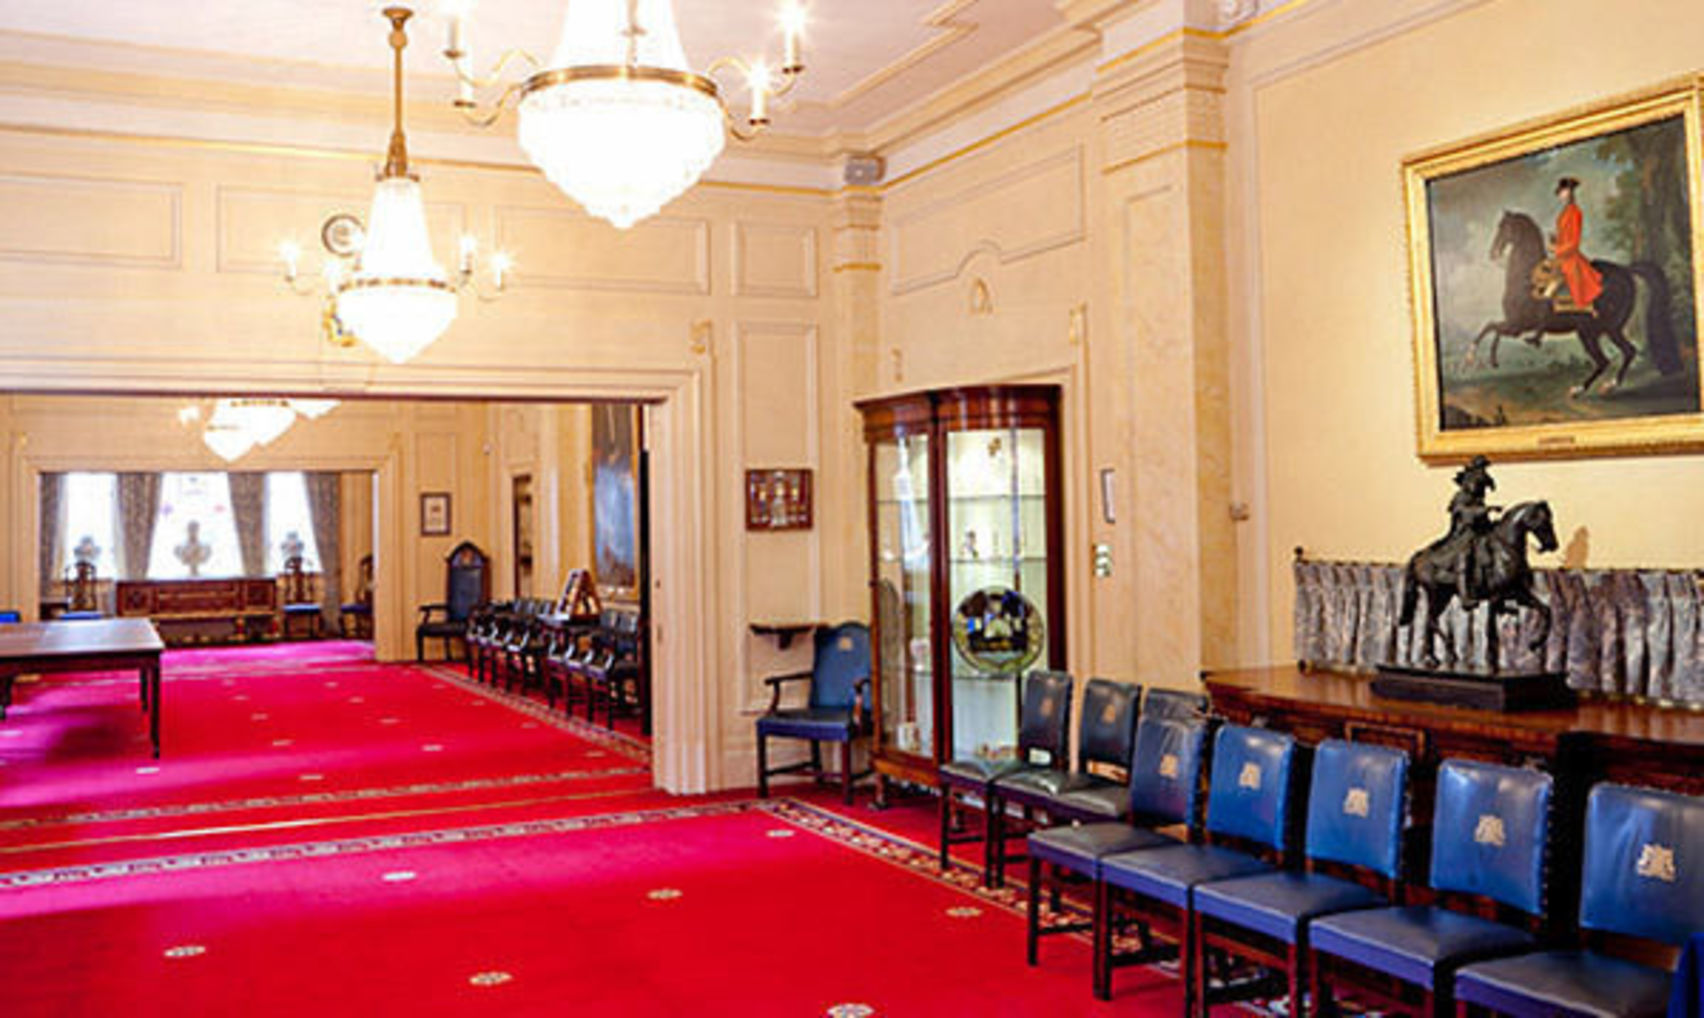 The Livery Room, Saddlers' Hall